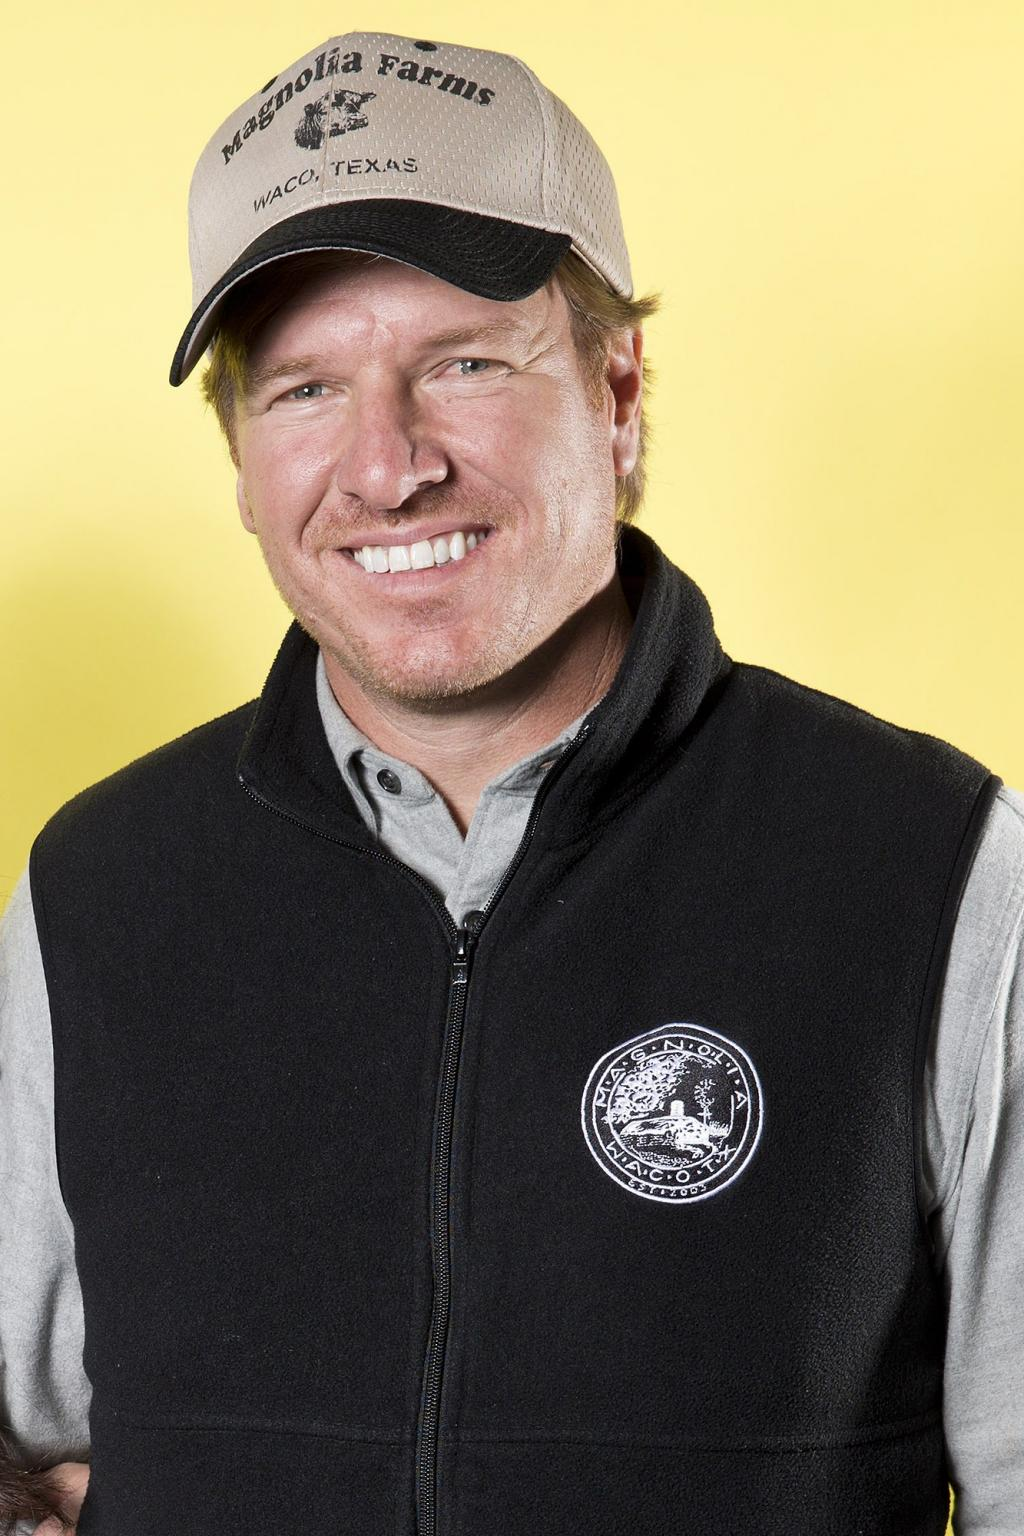 Chip Gaines Is Writing a Memoir! 'I've Done So Many Dumb Things in My Day That I Had Enough Material to Write a Book'